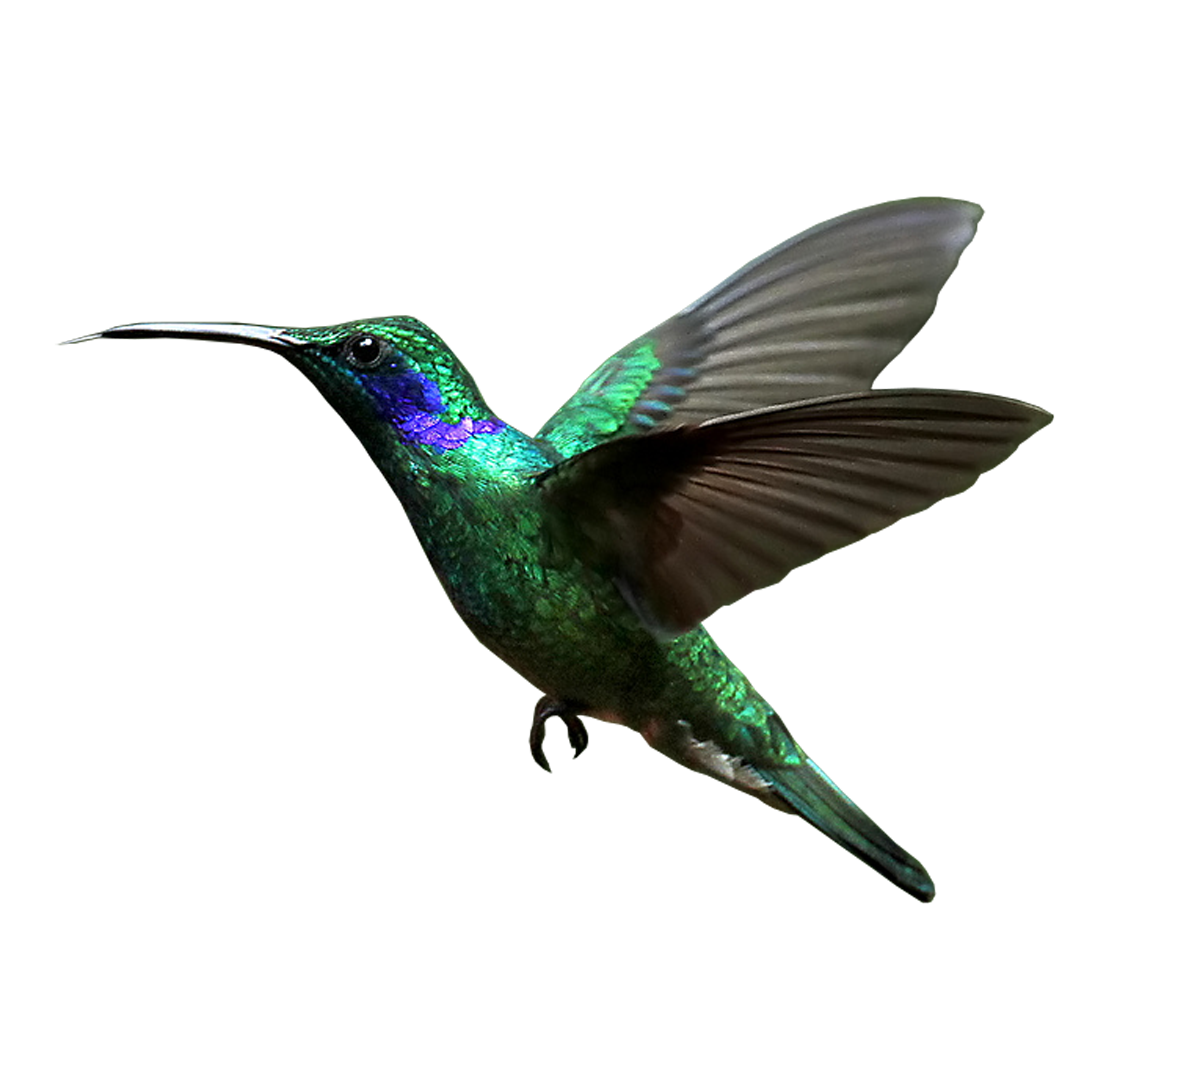 Humming Bird Png - Hummingbird PNG images free download